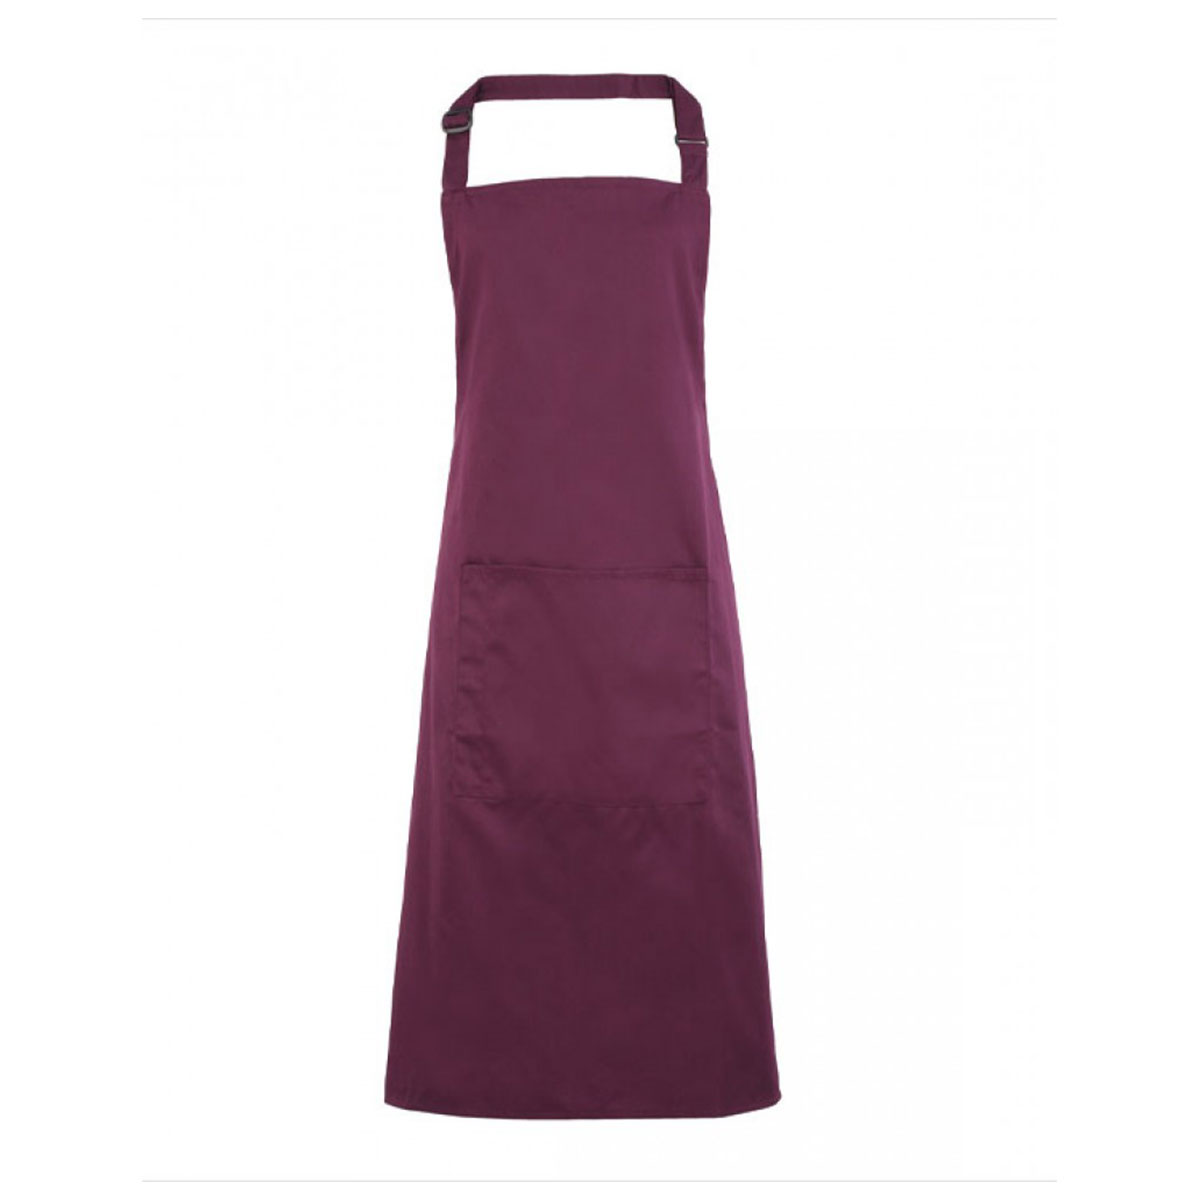 Colours Bib Apron with Pocket - pr154-aubergine